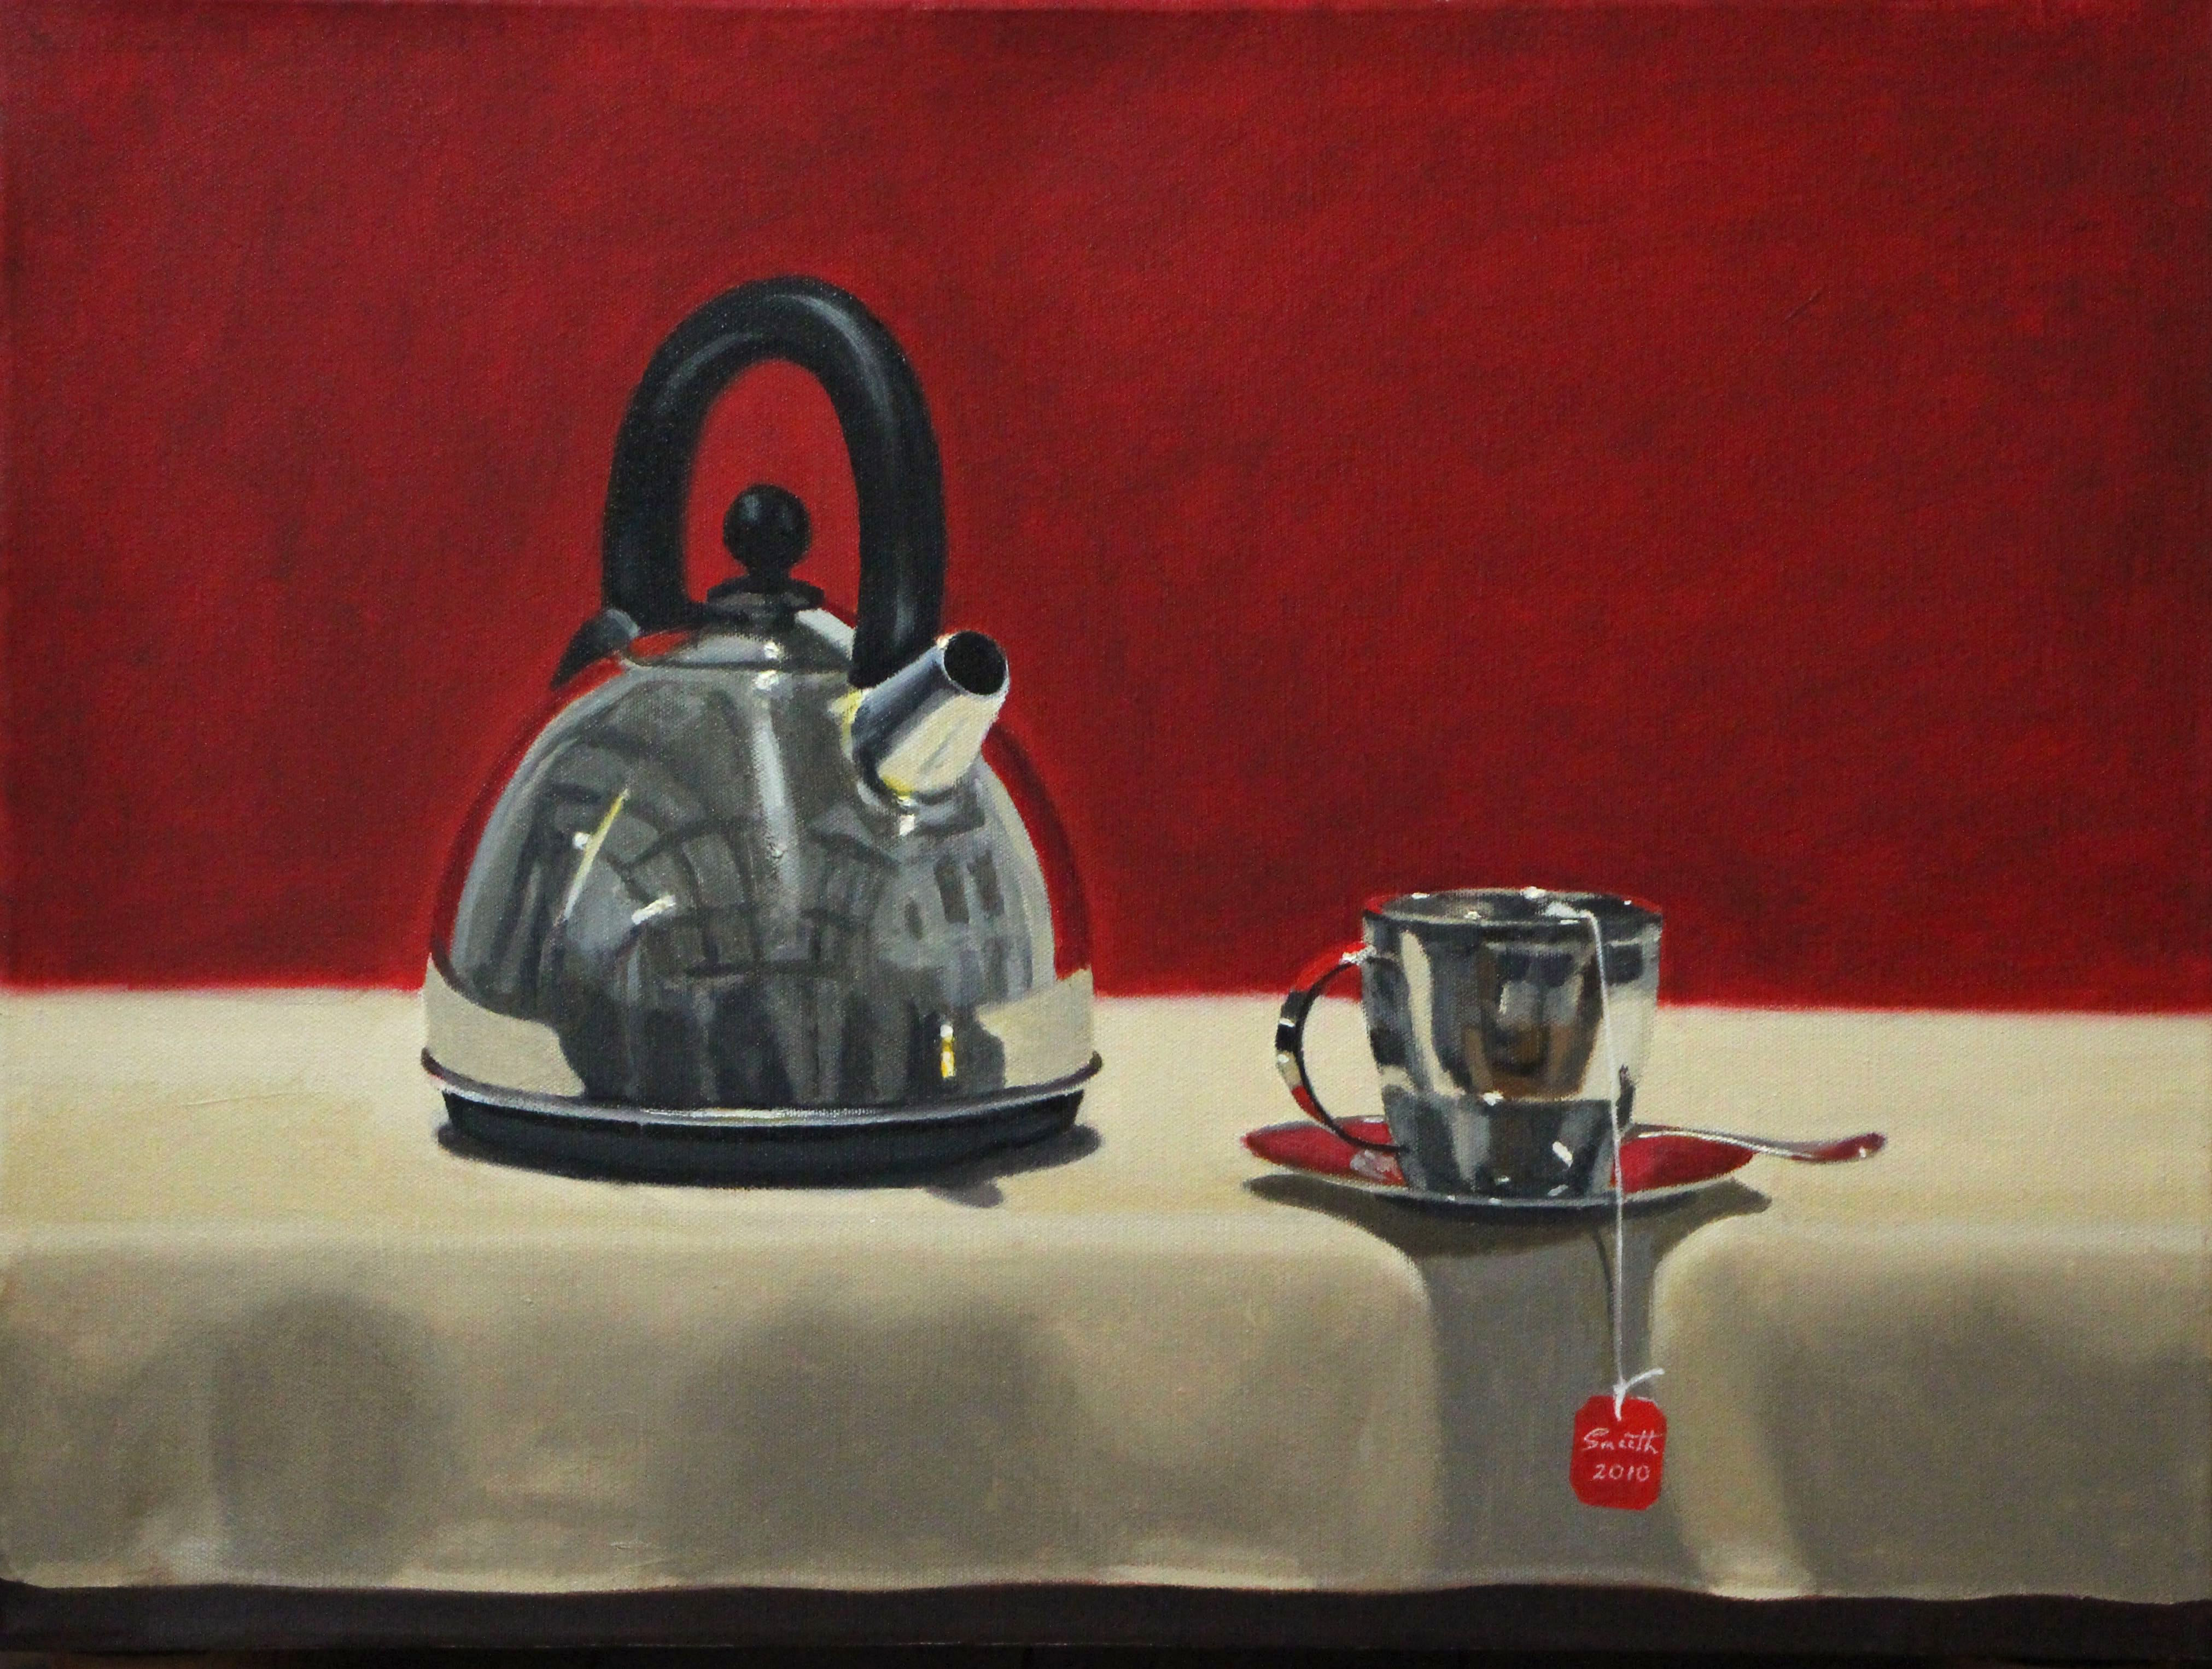 9Still Life with Kettle & Cup 2014 Oil on canvas 40x50cm$3,000